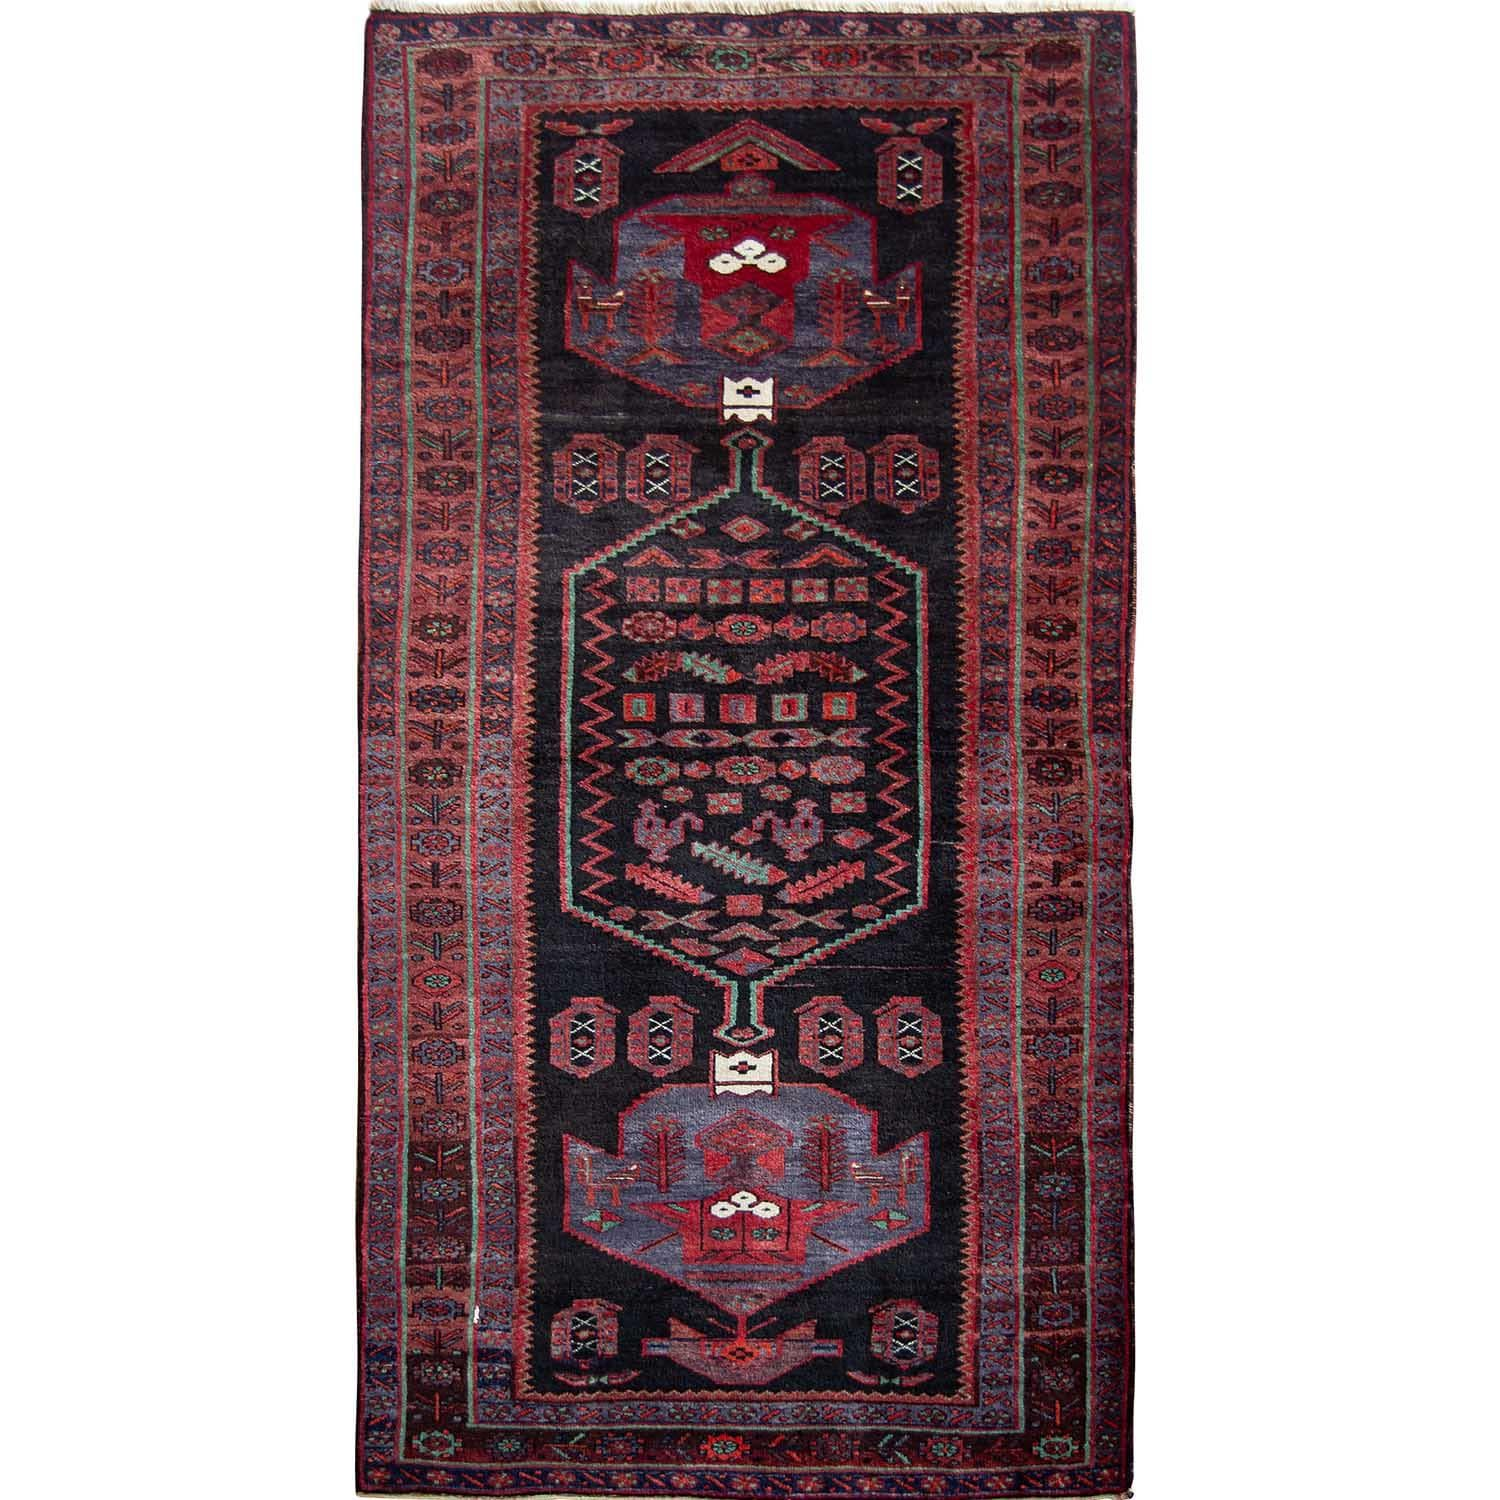 Fine Hand-knotted Wool Tribal Kolyai Persian Runner 130cm x 306cm Persian-Rug | House-of-Haghi | NewMarket | Auckland | NZ | Handmade Persian Rugs | Hand Knotted Persian Rugs